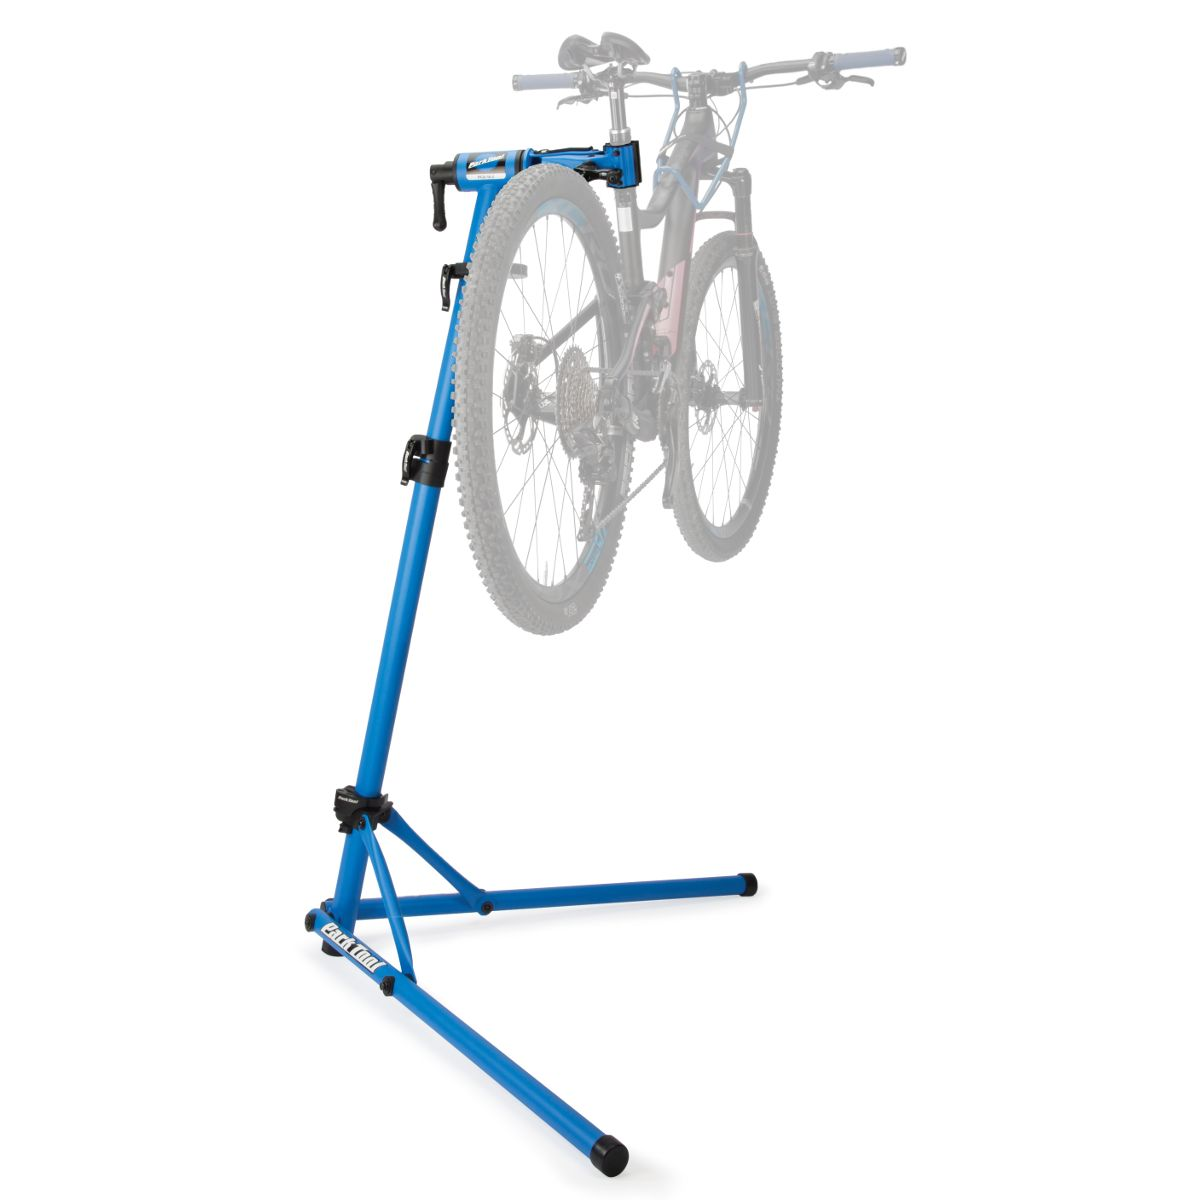 PCS-10.2 bicycle workstand with tool tray